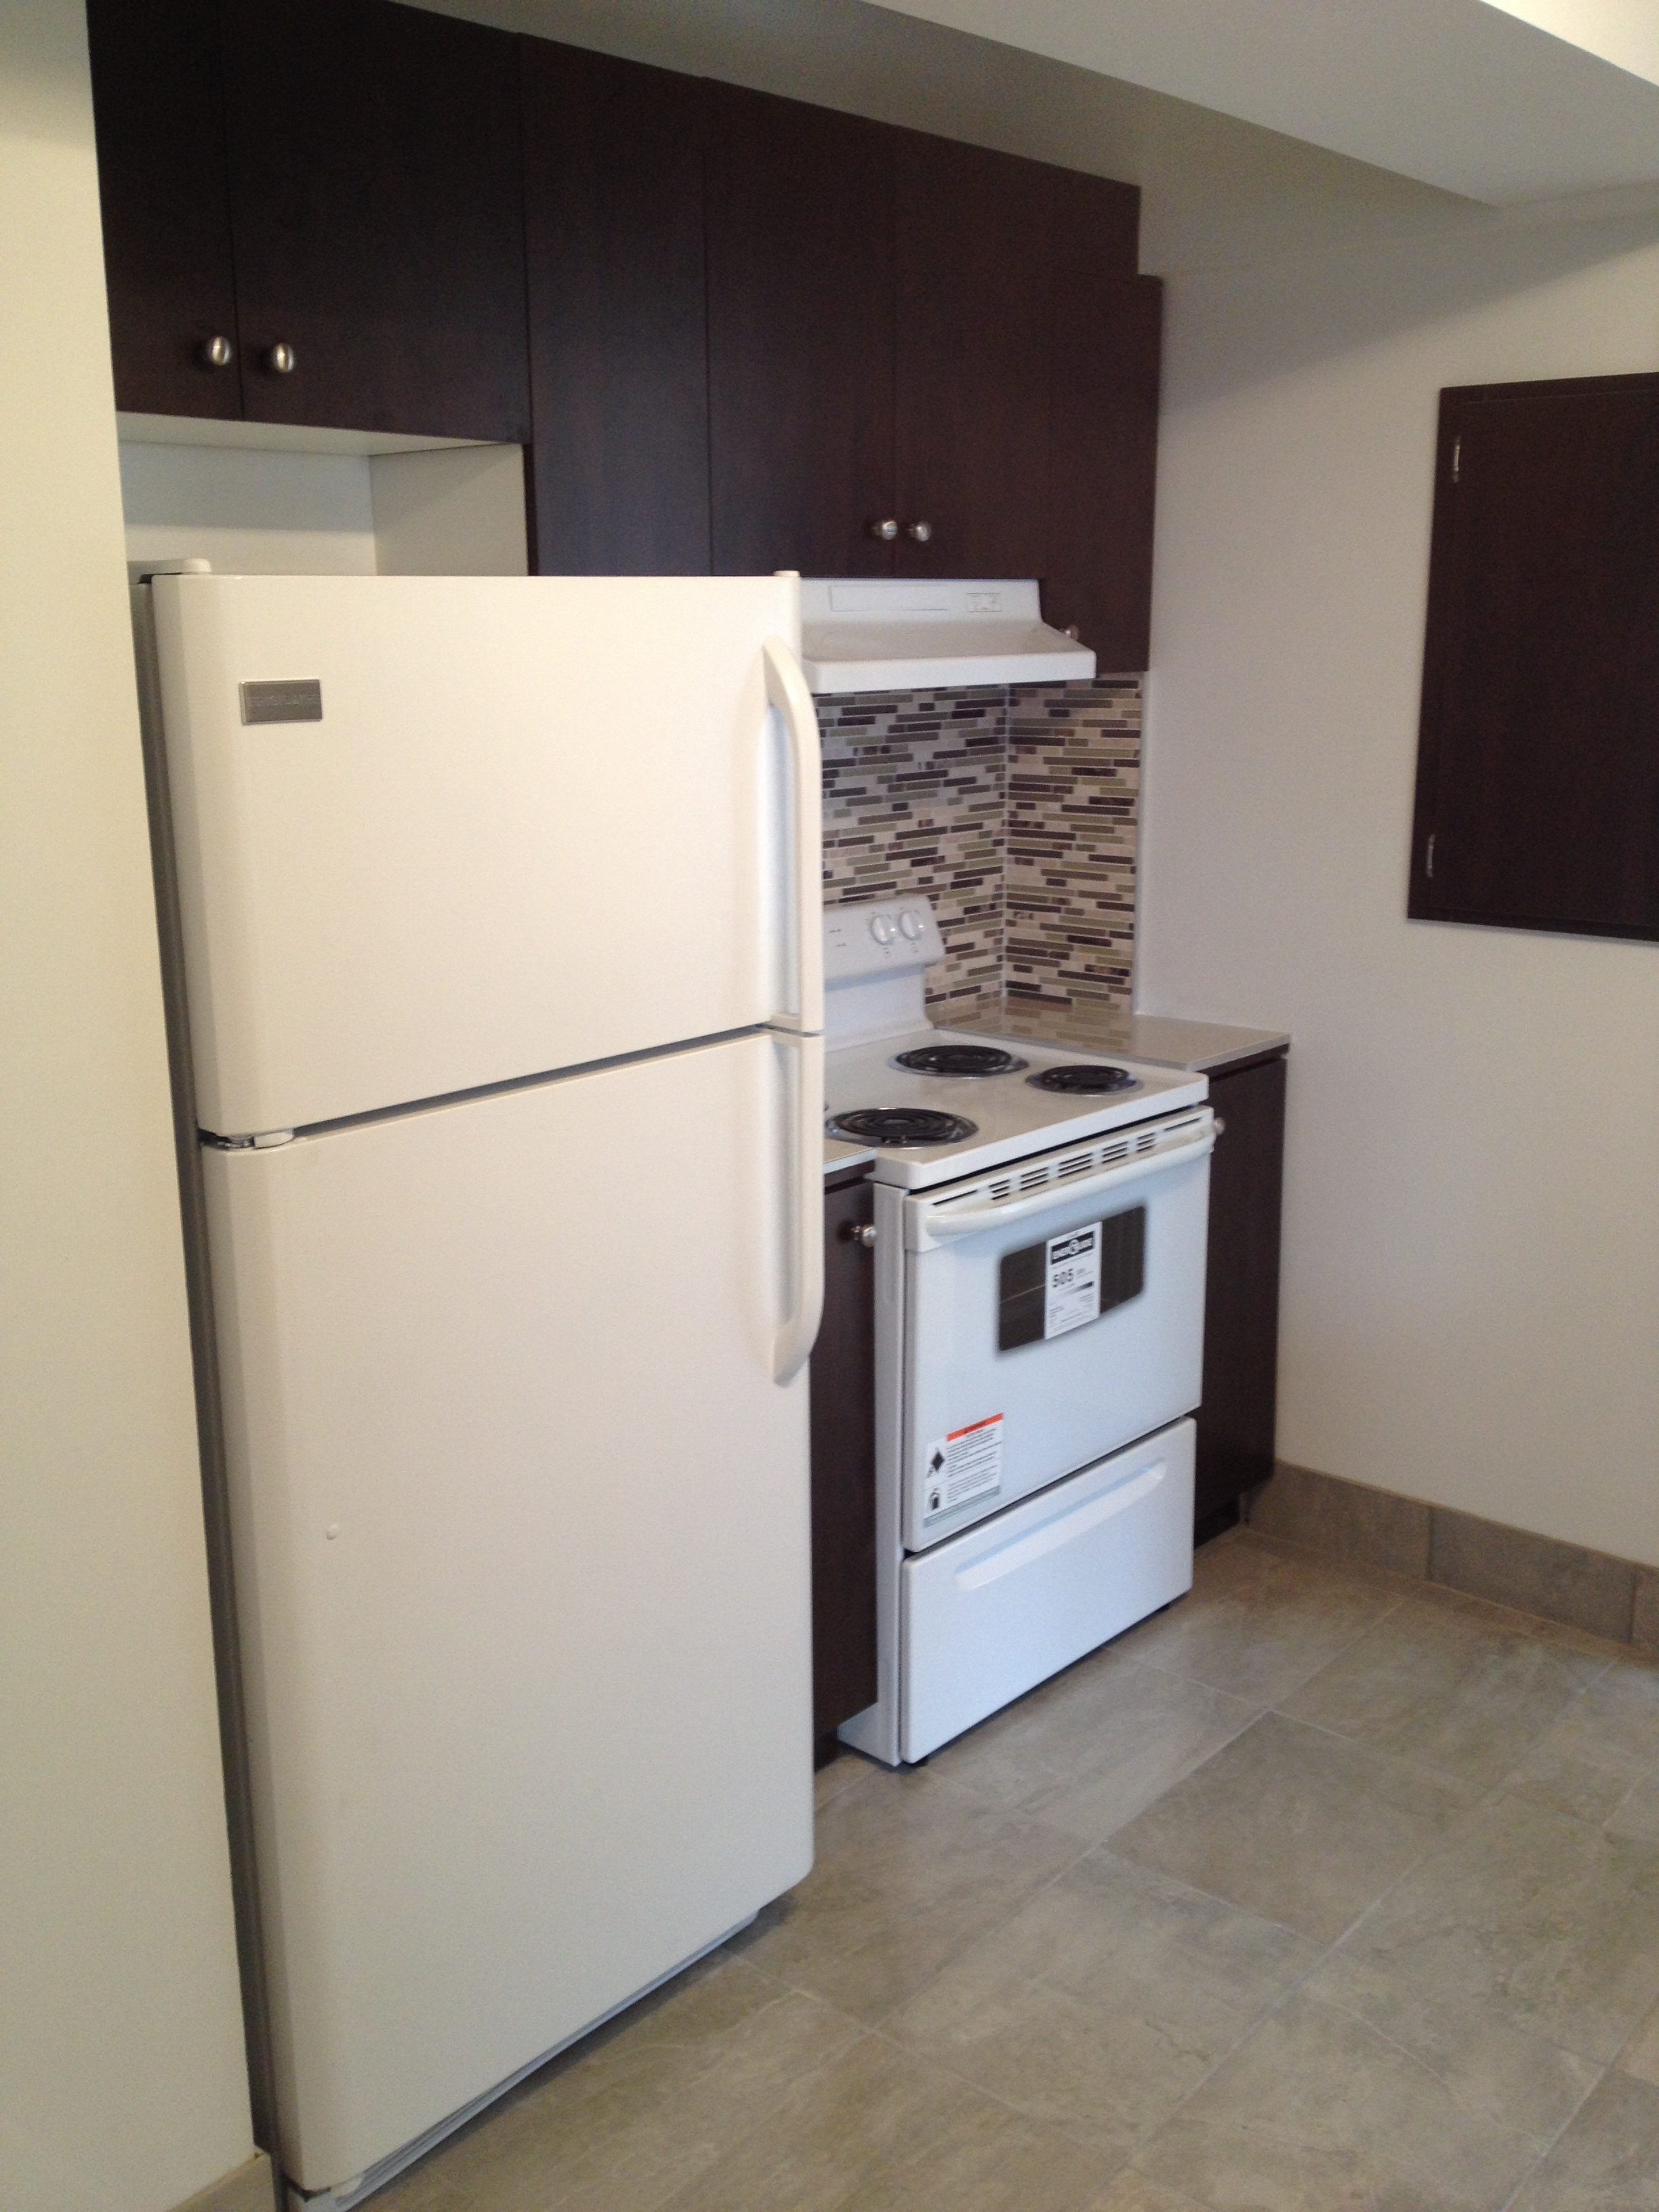 1 bedroom Apartments for rent in Cote-des-Neiges at 4201 Decarie - Photo 04 - RentersPages – L146808